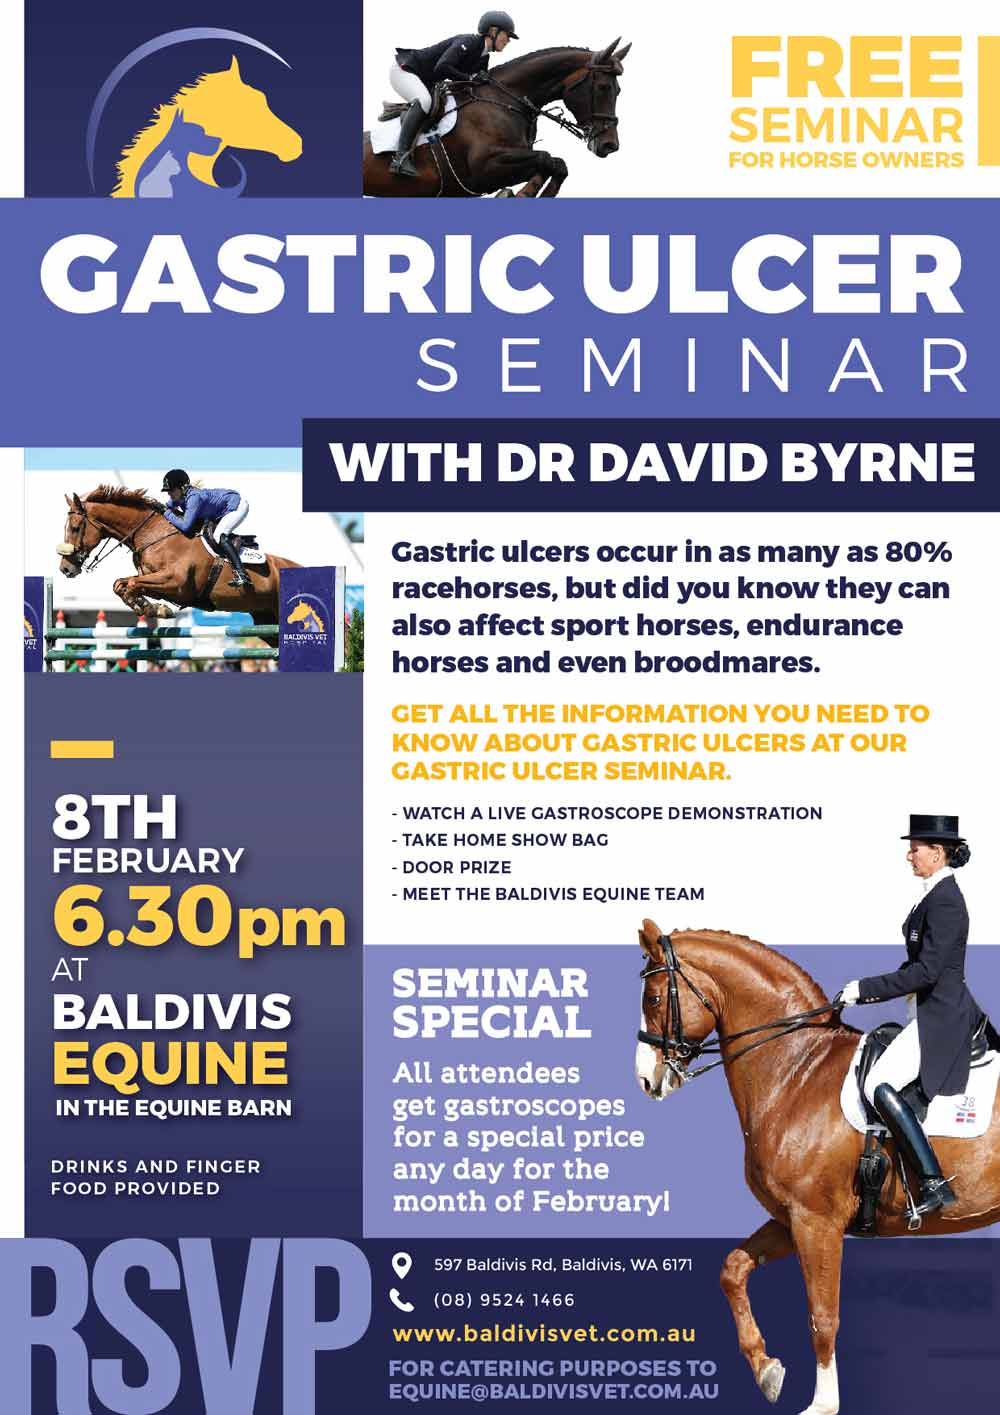 bvh-gastric-ulcer-seminar-8th-feb-2018